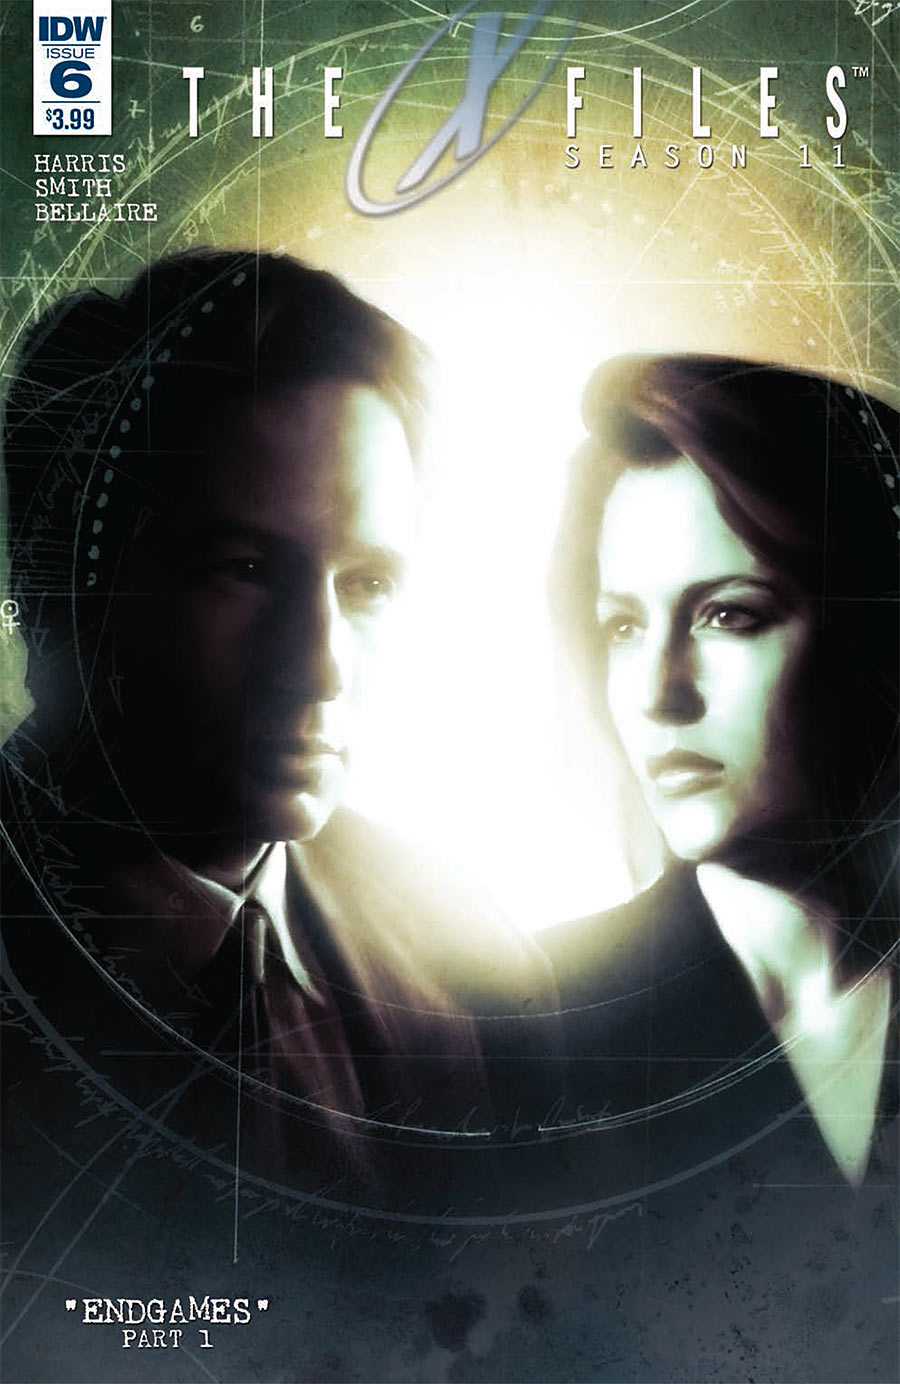 While The X-Files TV show makes its triumphant return to the airwaves, IDW's X-Files comic series starts bringing its current run to a close with Endgame. Is it good?